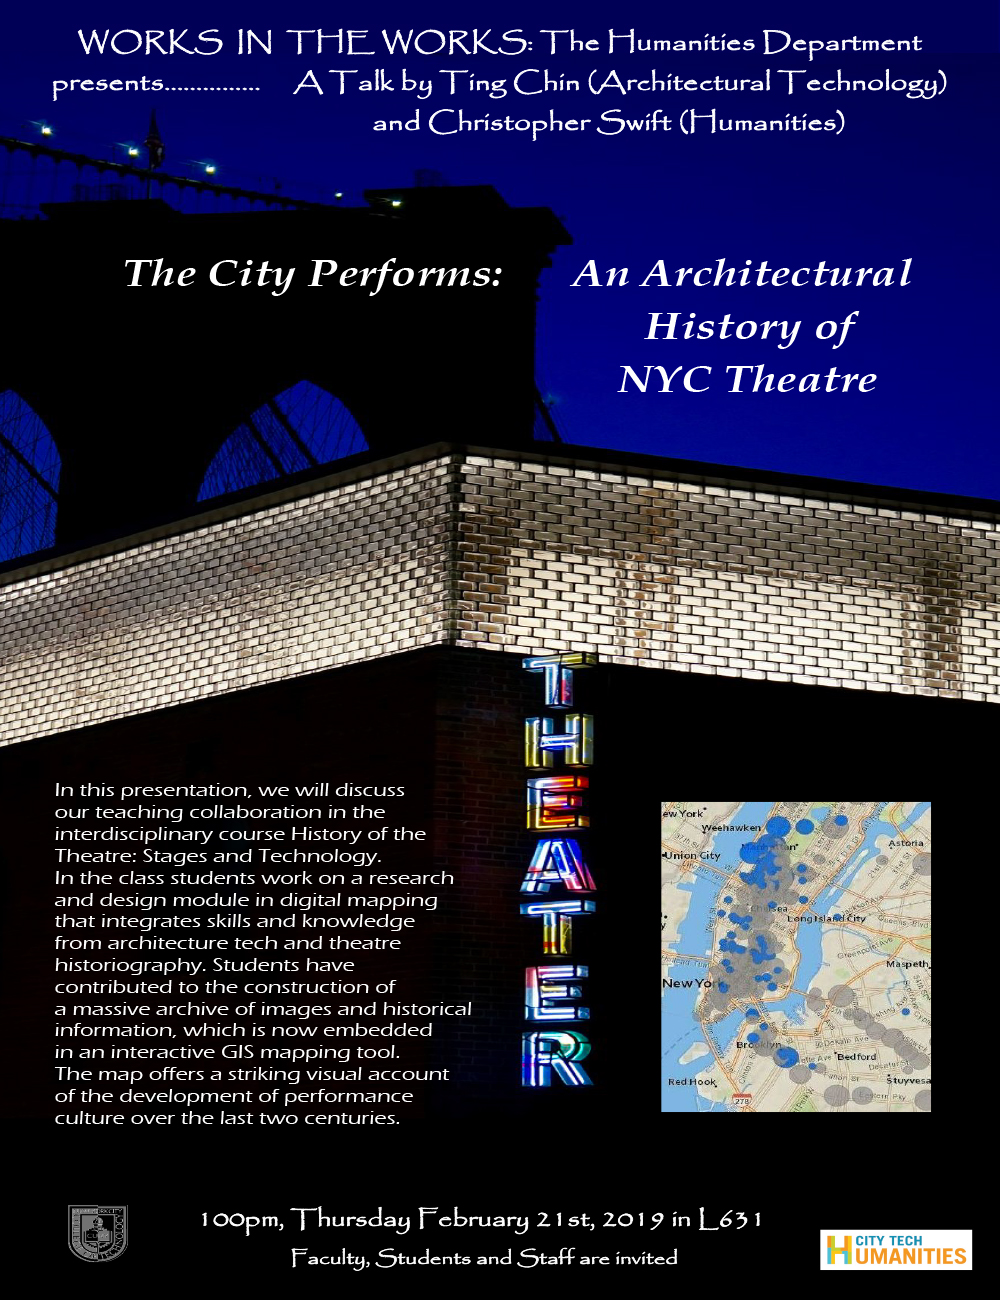 The City Performs: An Architectural History of NYC Theatre 5